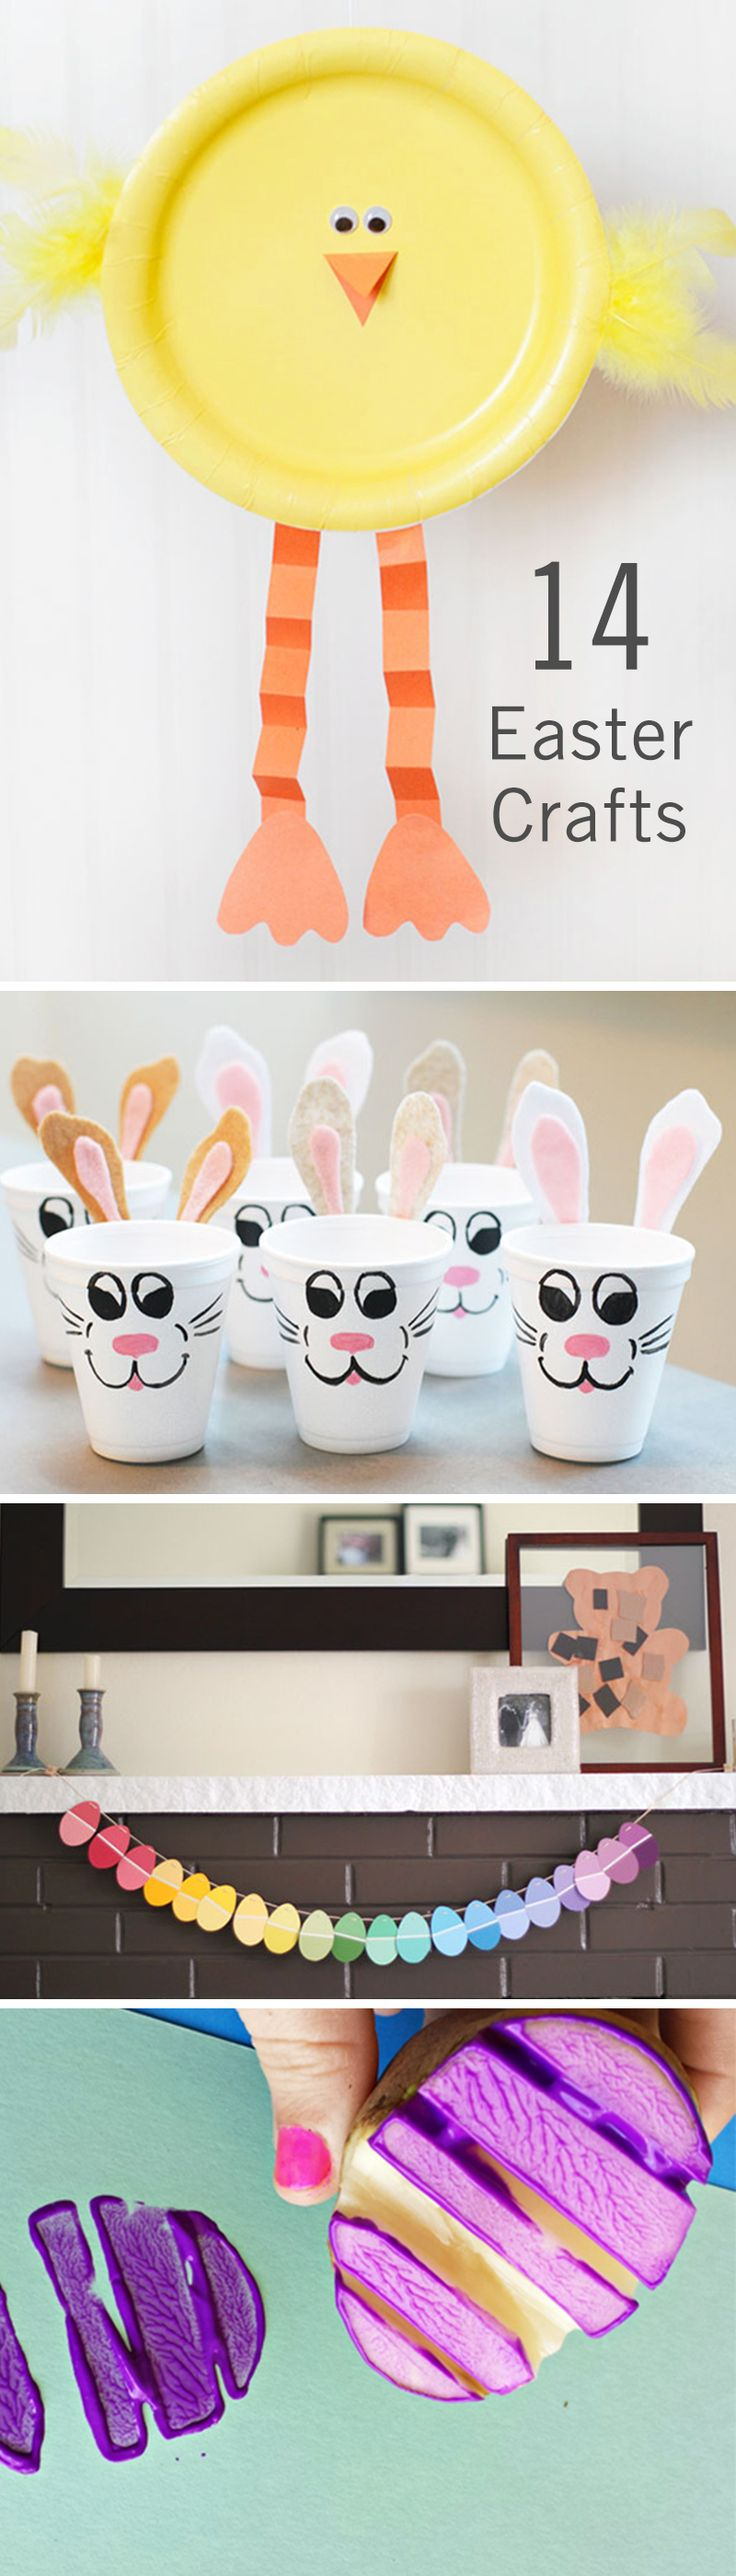 With spring right around the corner, it's time to start planning your Easter crafting schedule! From bunnies to chicks to jelly beans, there's plenty of inspiration to choose from. With just a few supplies from the craft store, you and your toddler can get moving on some colorful DIY decorations to brighten up your home for the Easter holiday. From egg potato stamps to homemade bunny crayons, this list of kids Easter crafts has it all.